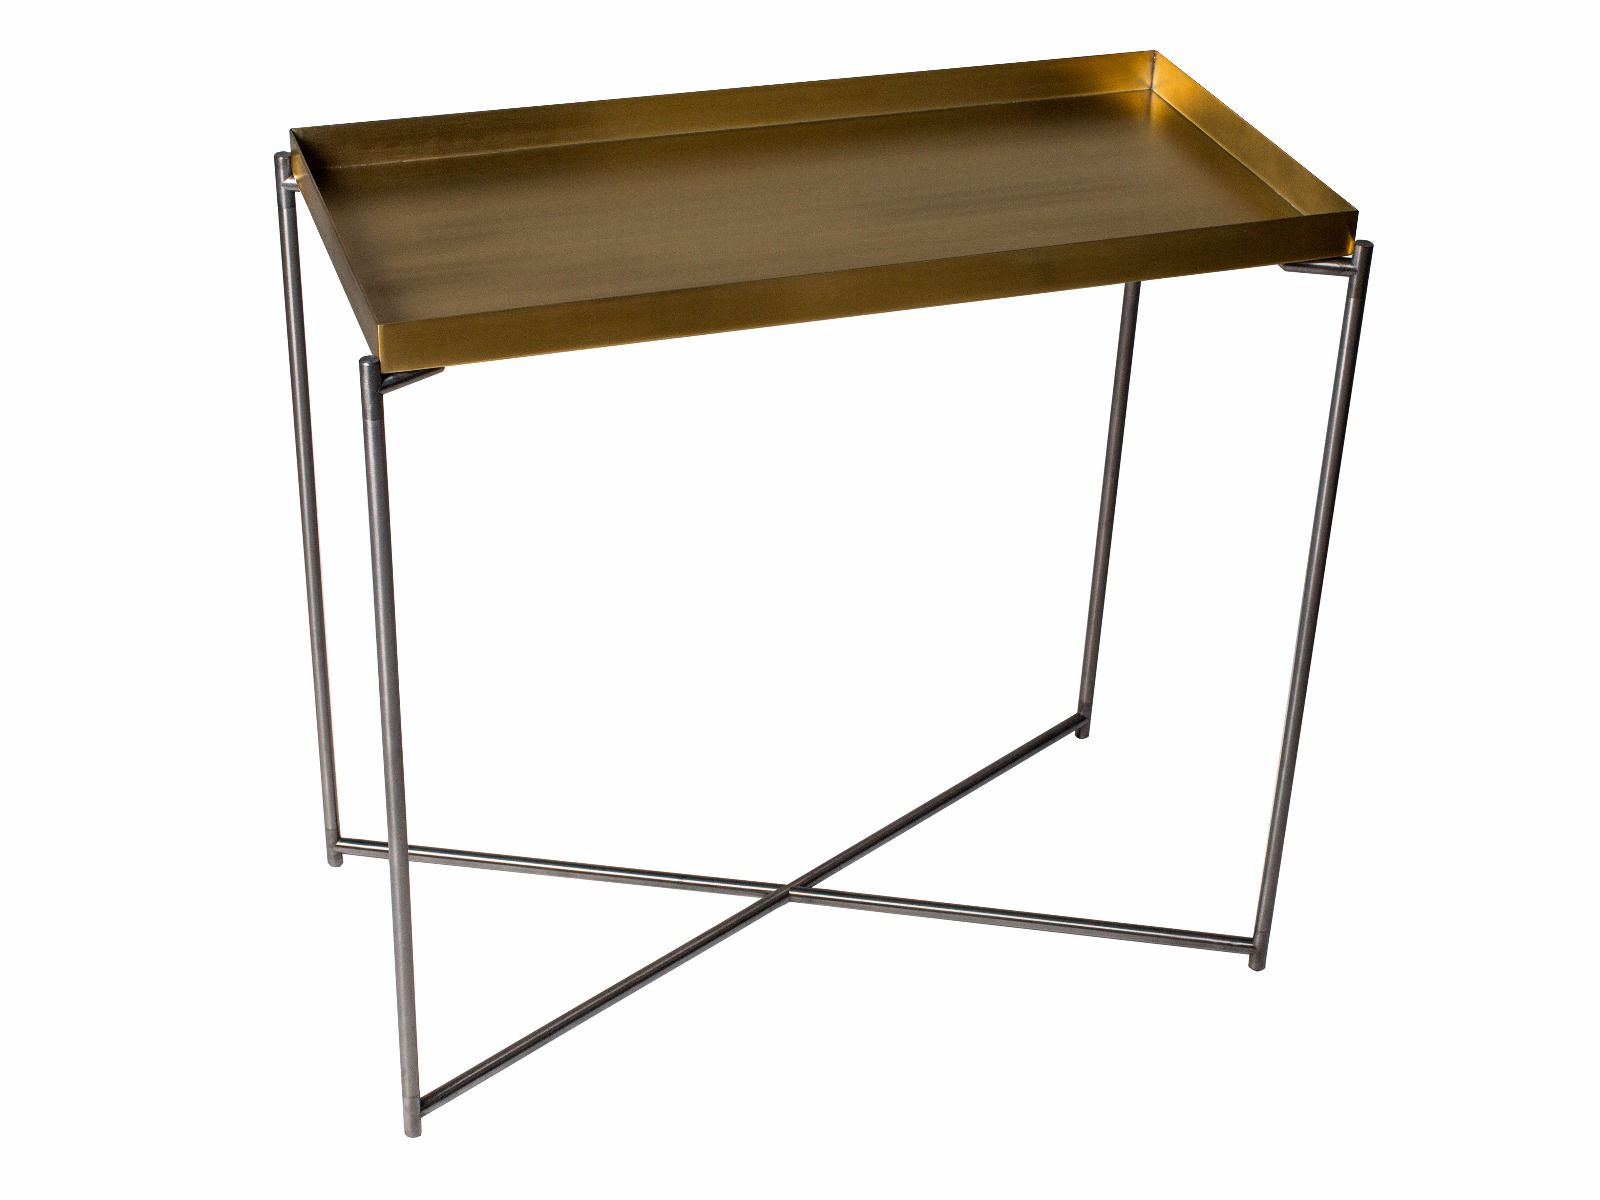 Collection Regarding Current Frame Console Tables (View 6 of 20)